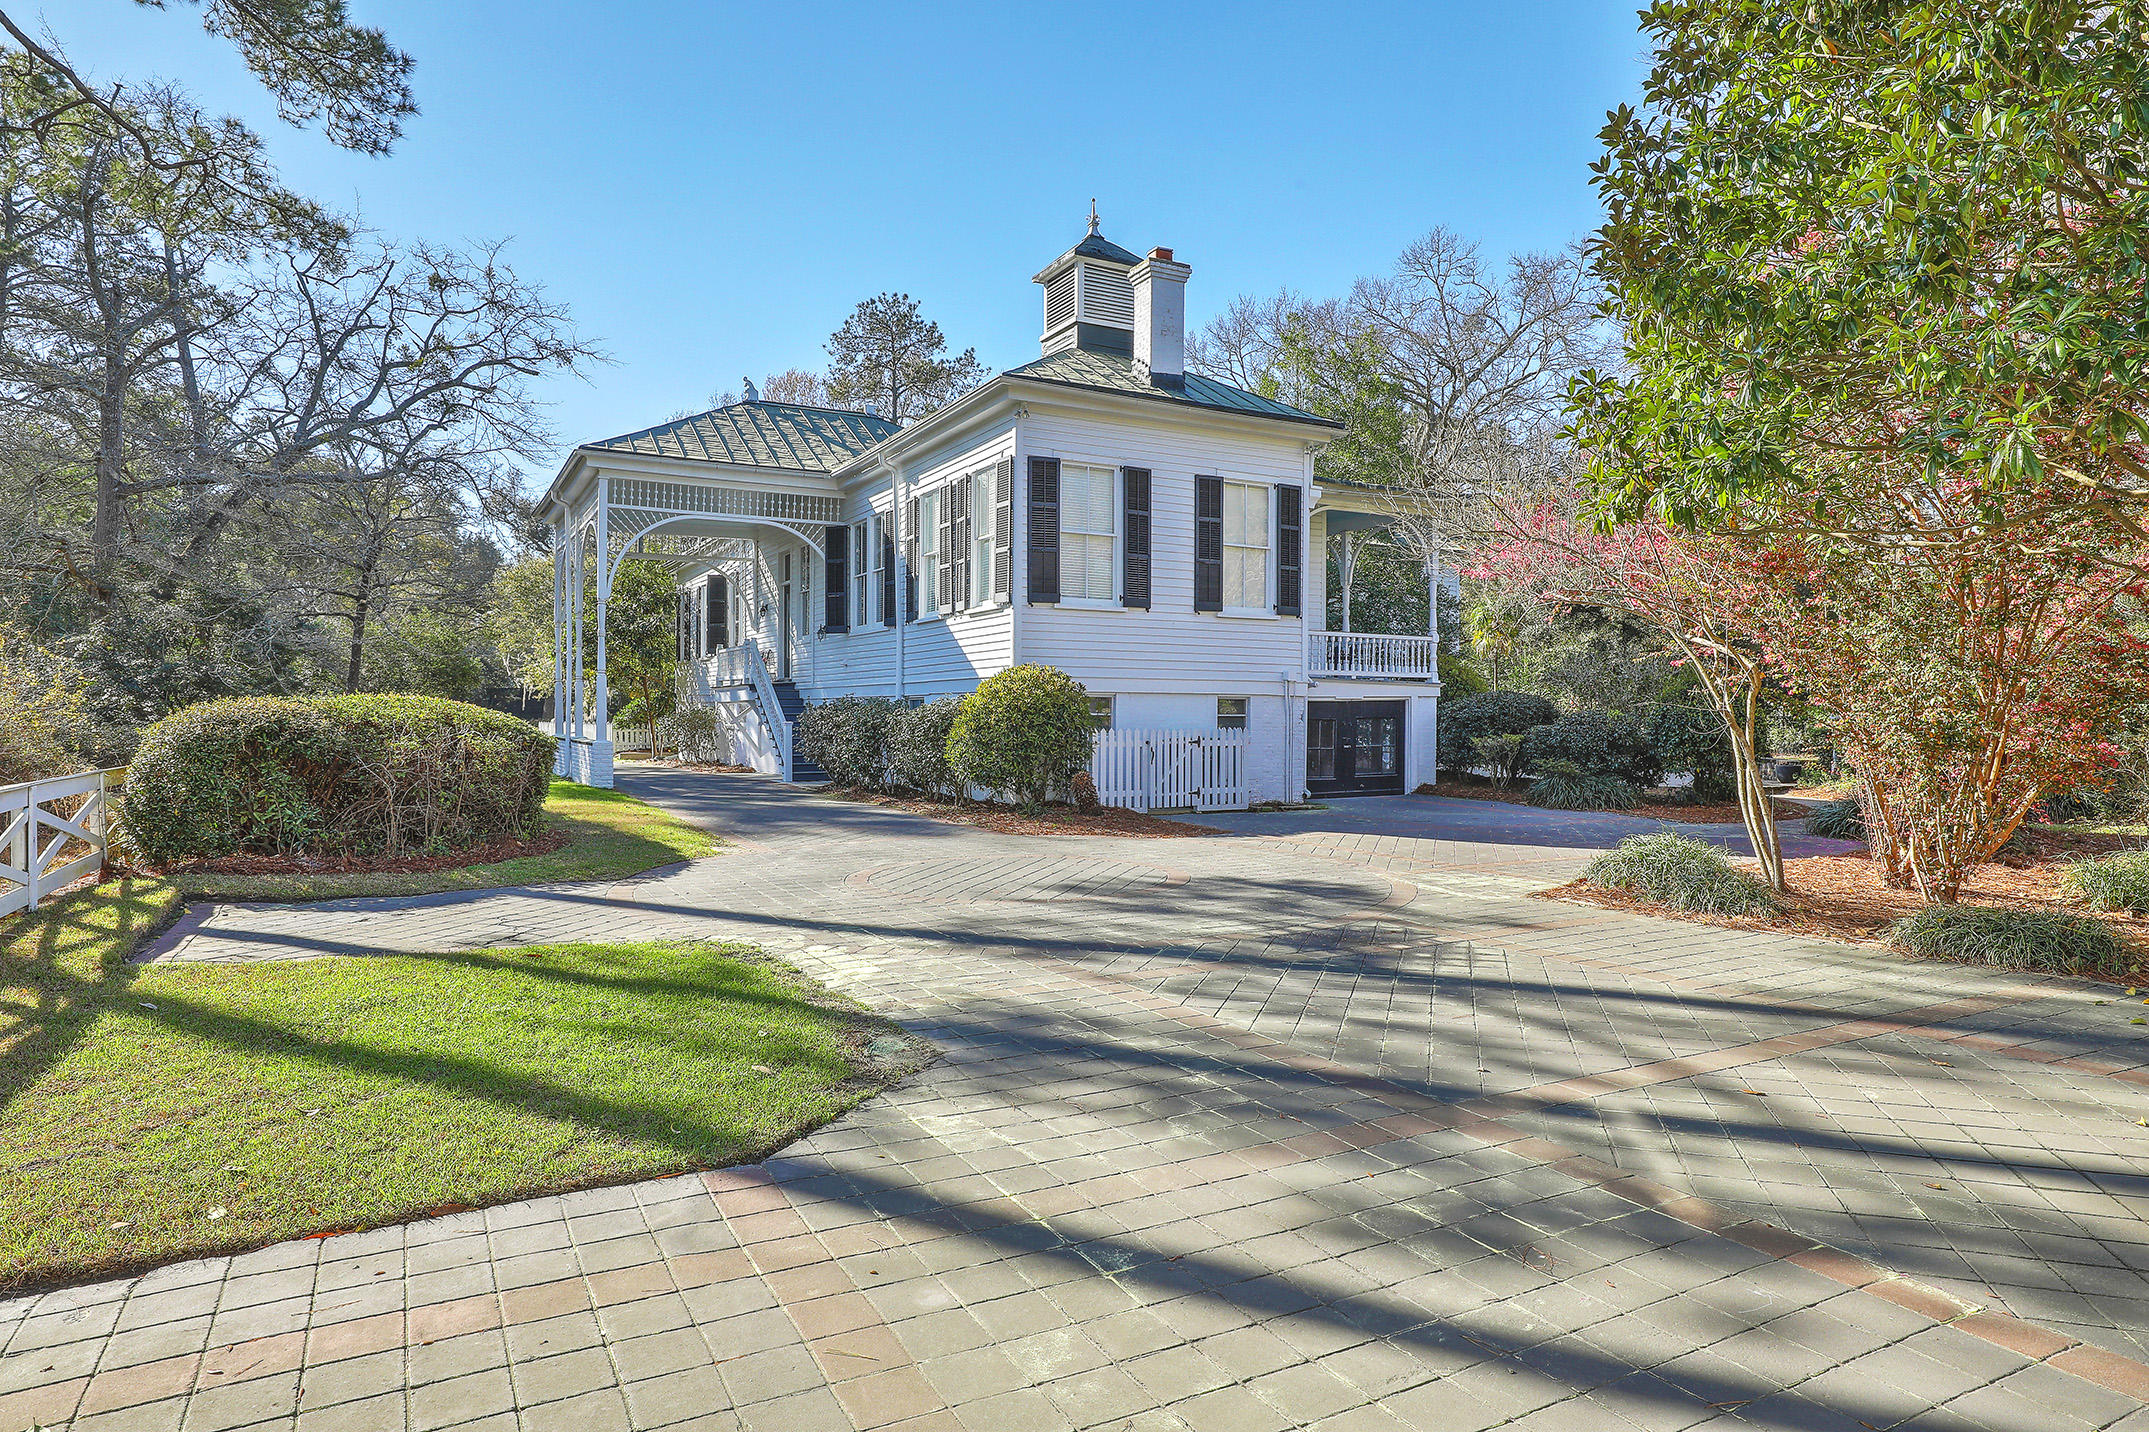 Photo of 116 Marion Ave, Summerville, SC 29483